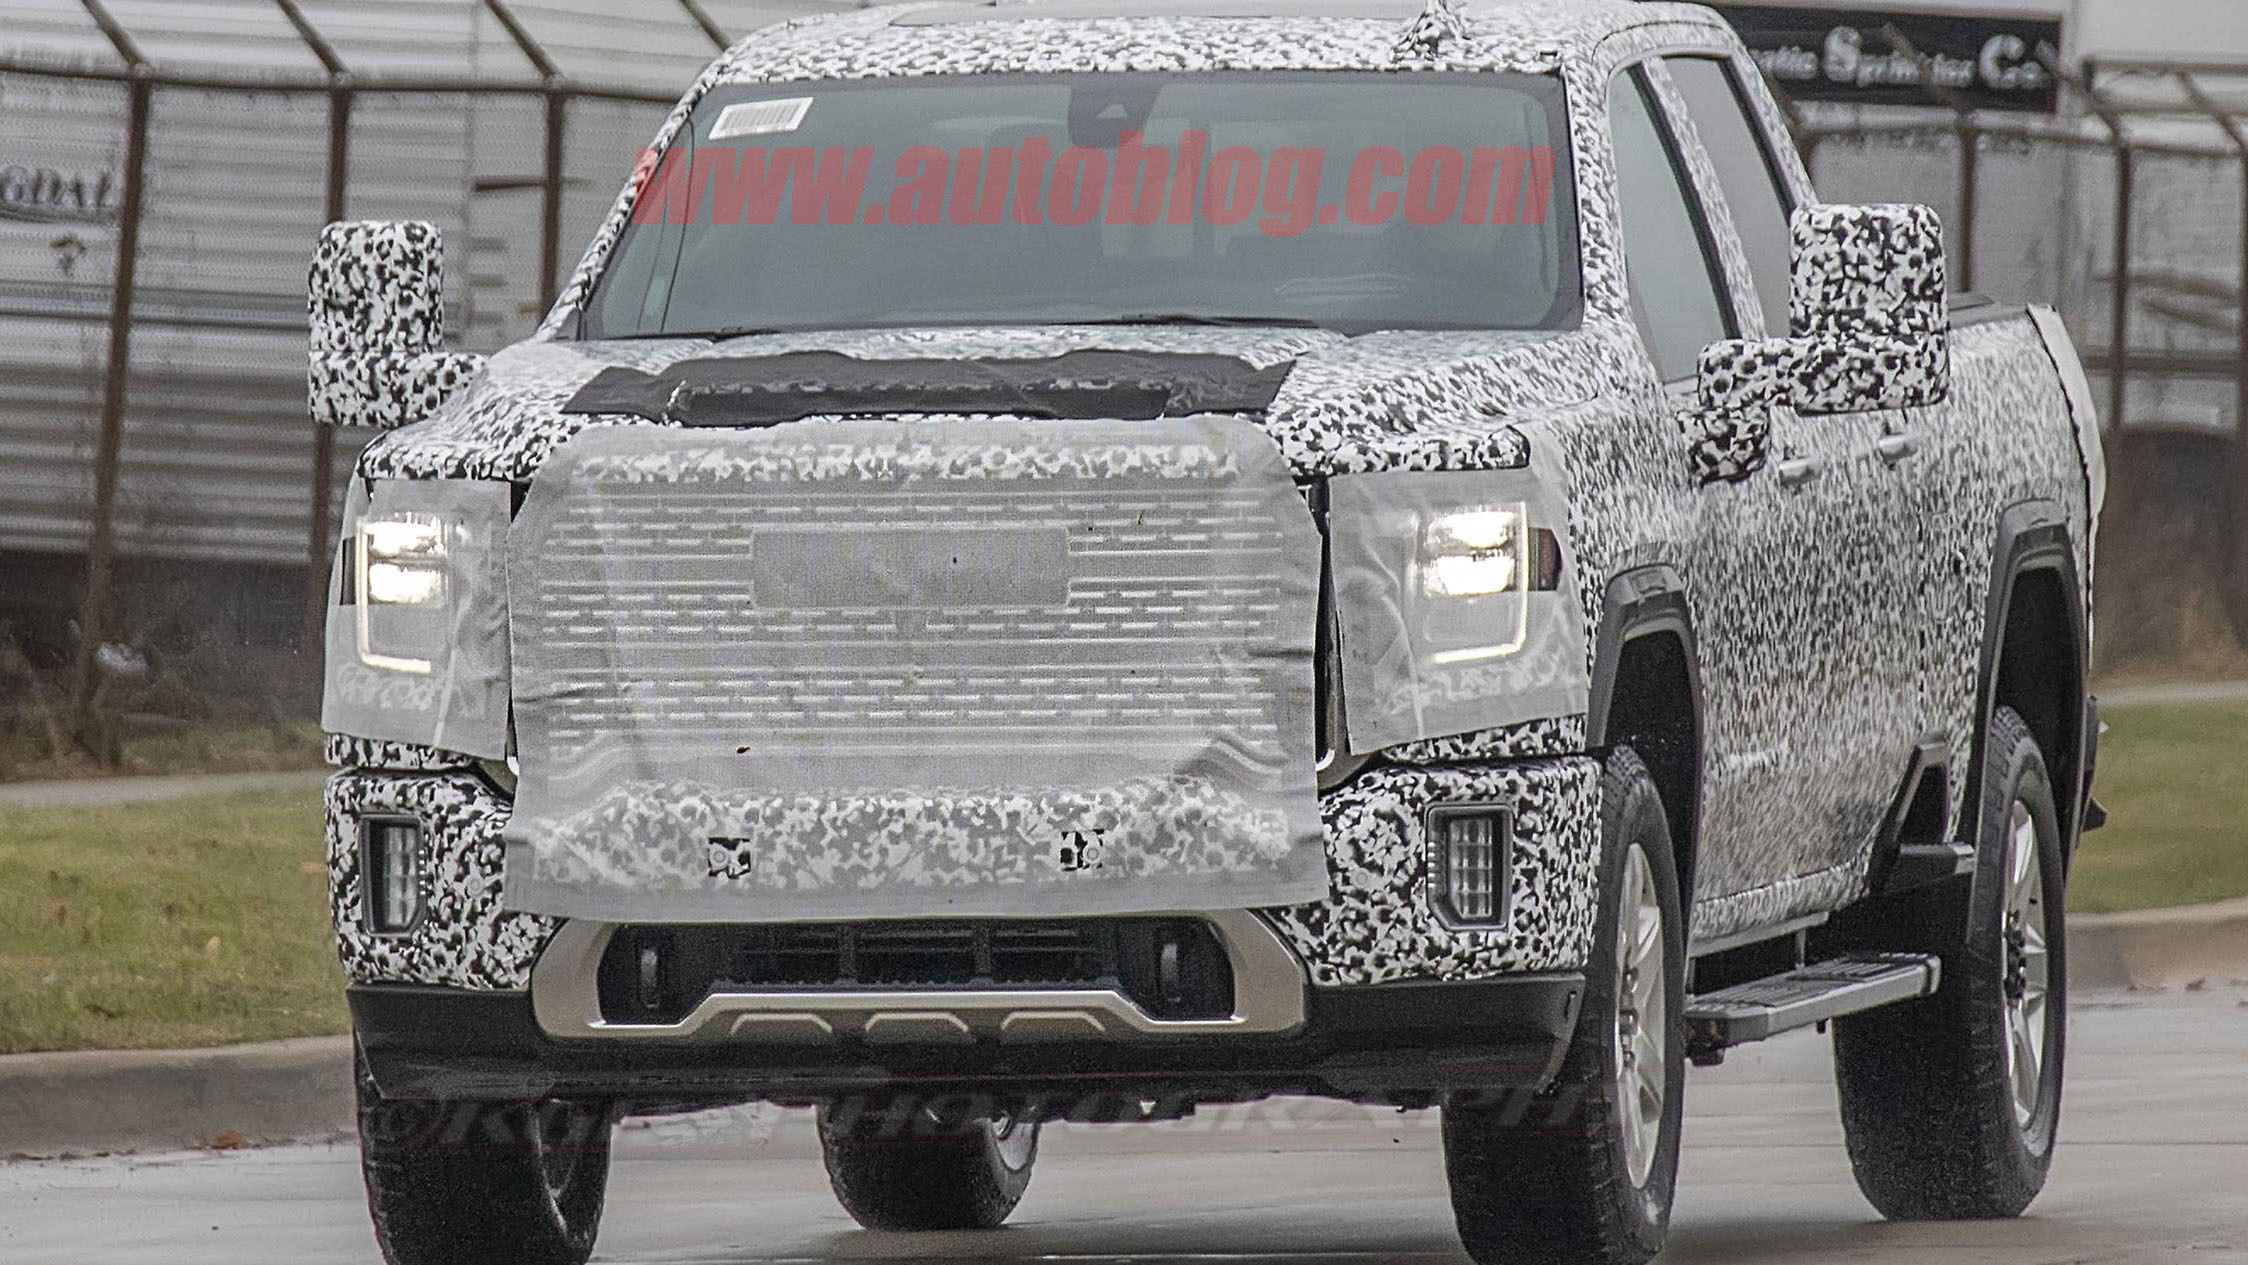 2020 GMC Sierra 2500 HD and 3500 HD spy photos | Autoblog